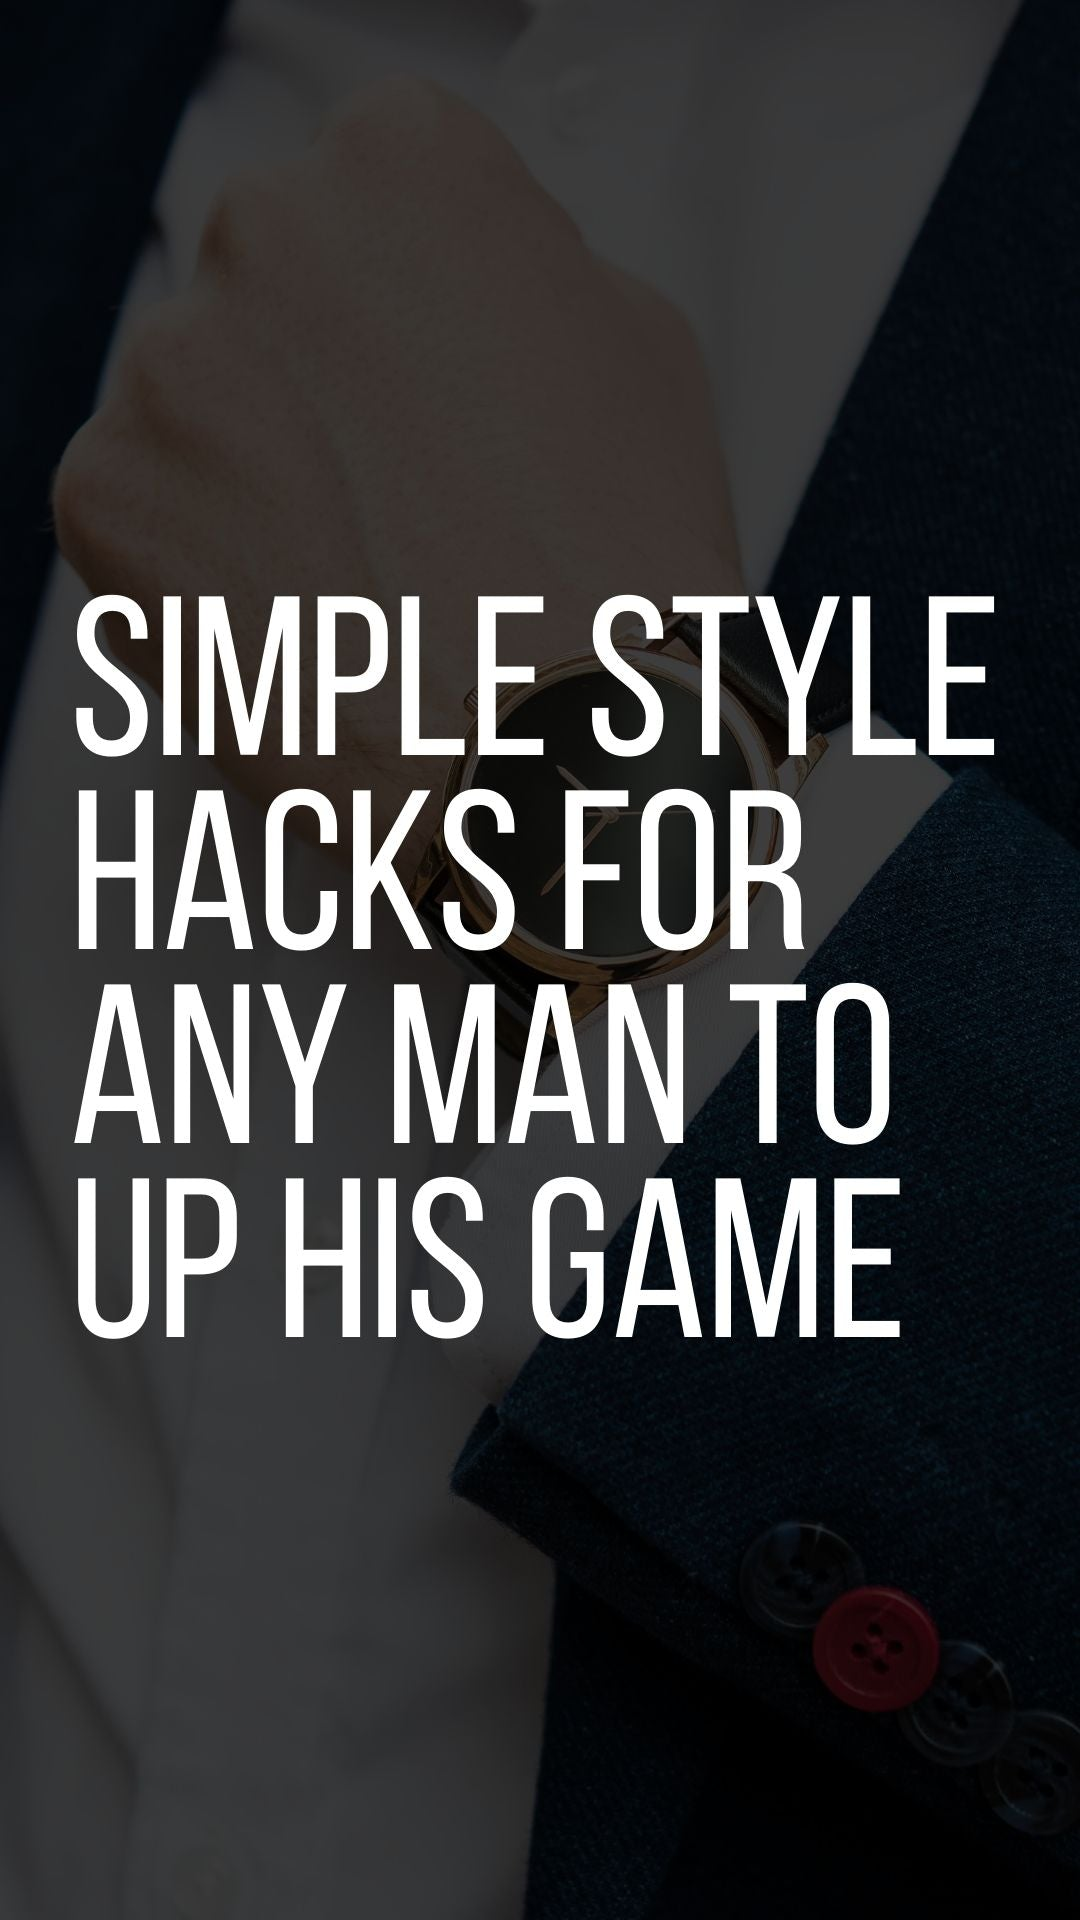 Simple Style Hacks for Any Man to Up His Game